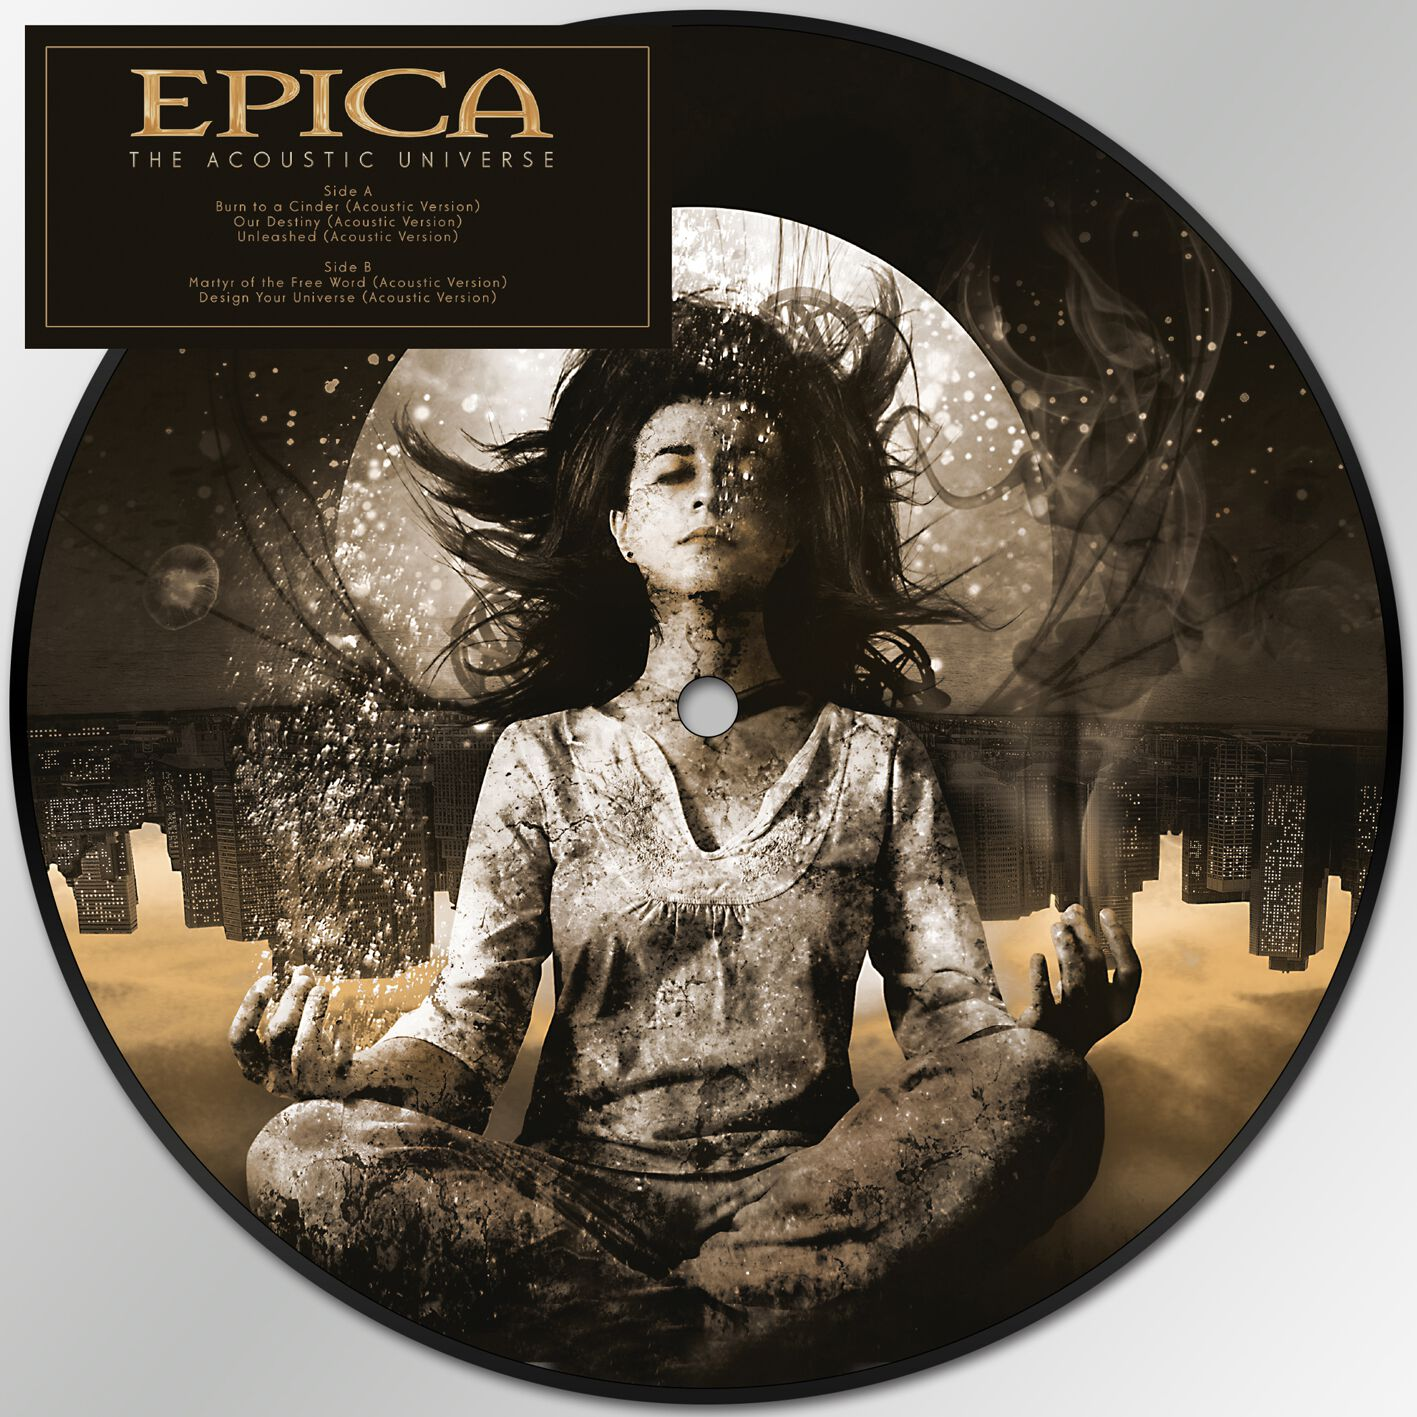 Image of Epica The acoustic universe EP Standard